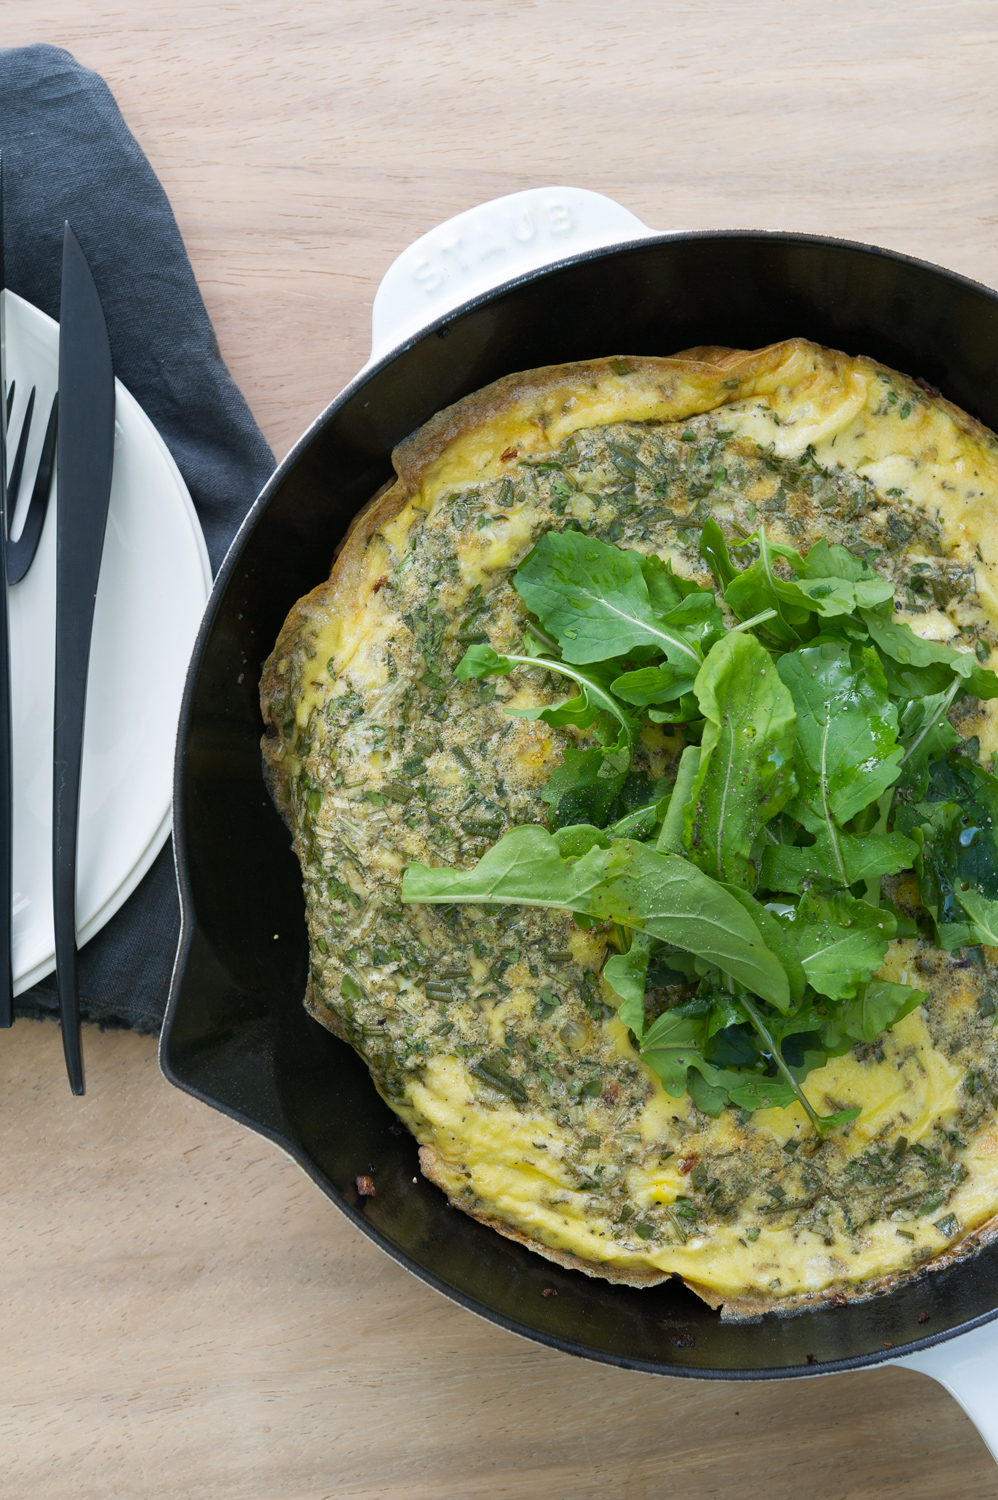 Gluten and Dairy Free Potato and herb skillet breakfast frittata recipe by Heather Cox of Eat Real Food